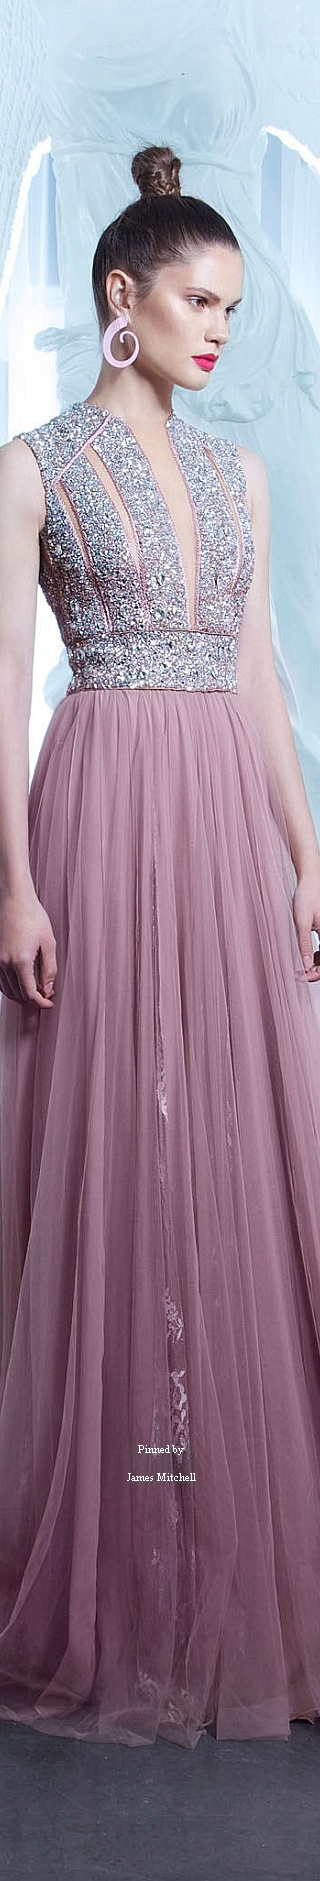 Nicolas Jebran Spring-summer 2015 | Glam Evening Gowns | Pinterest ...